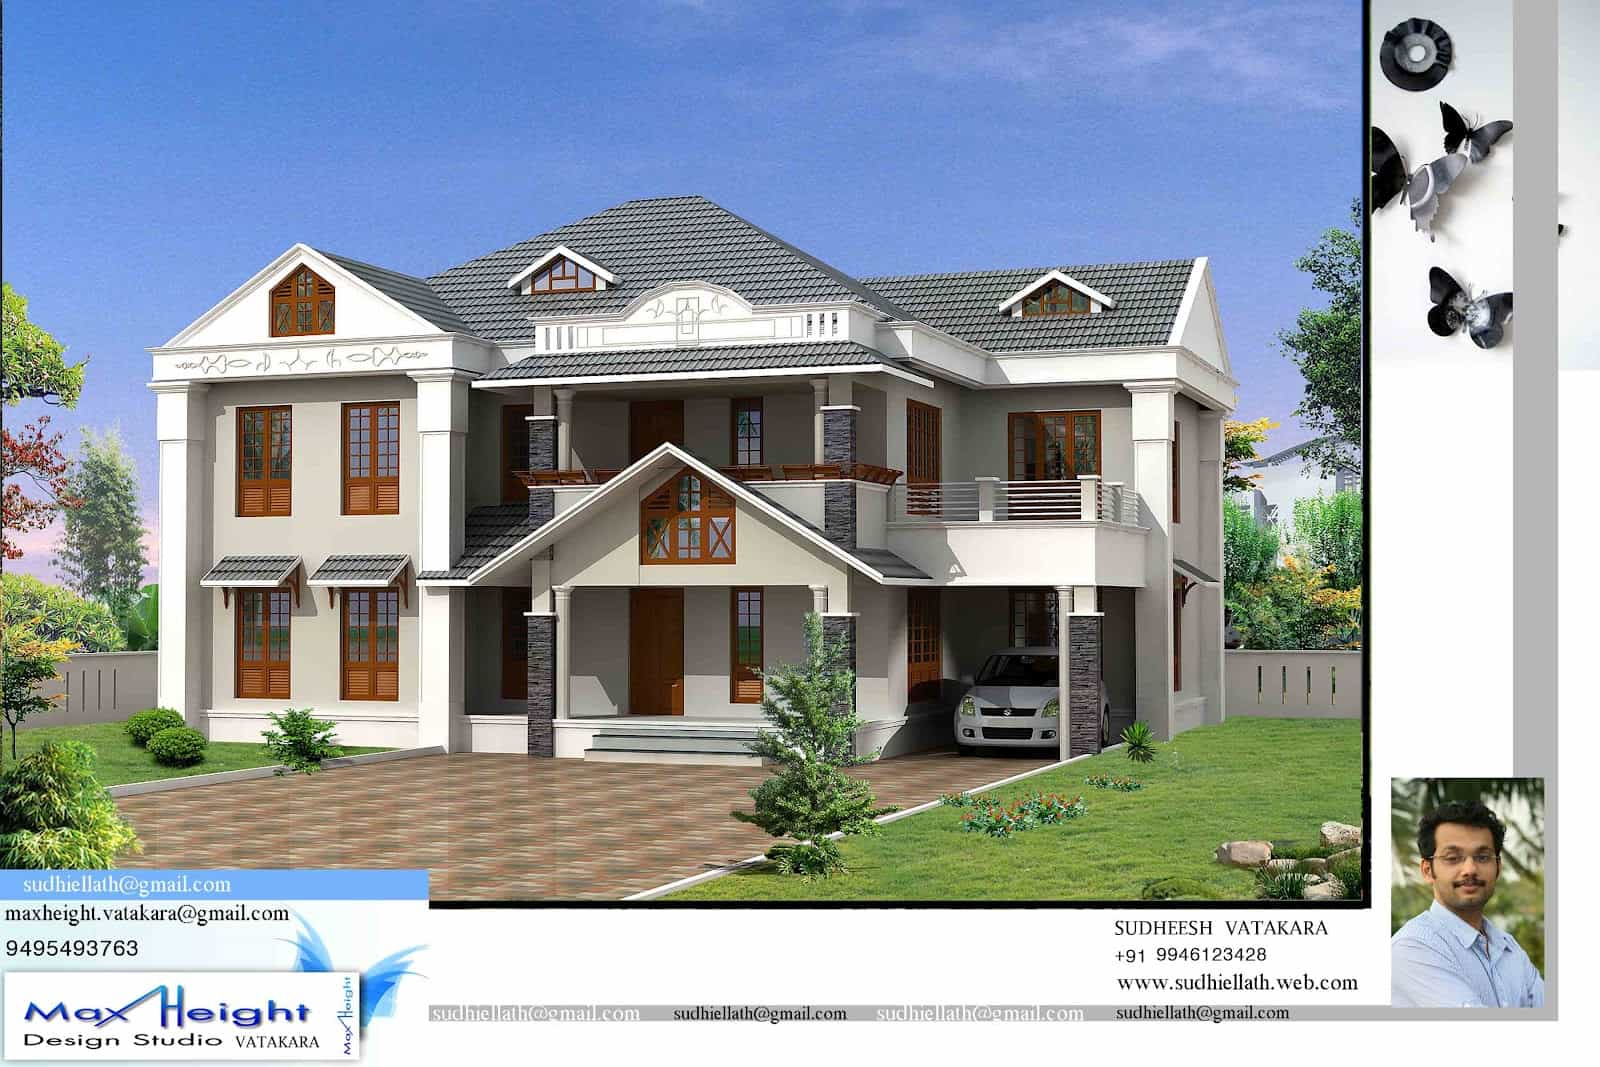 kerala house model latest Kerala house model Latest Kerala style home design